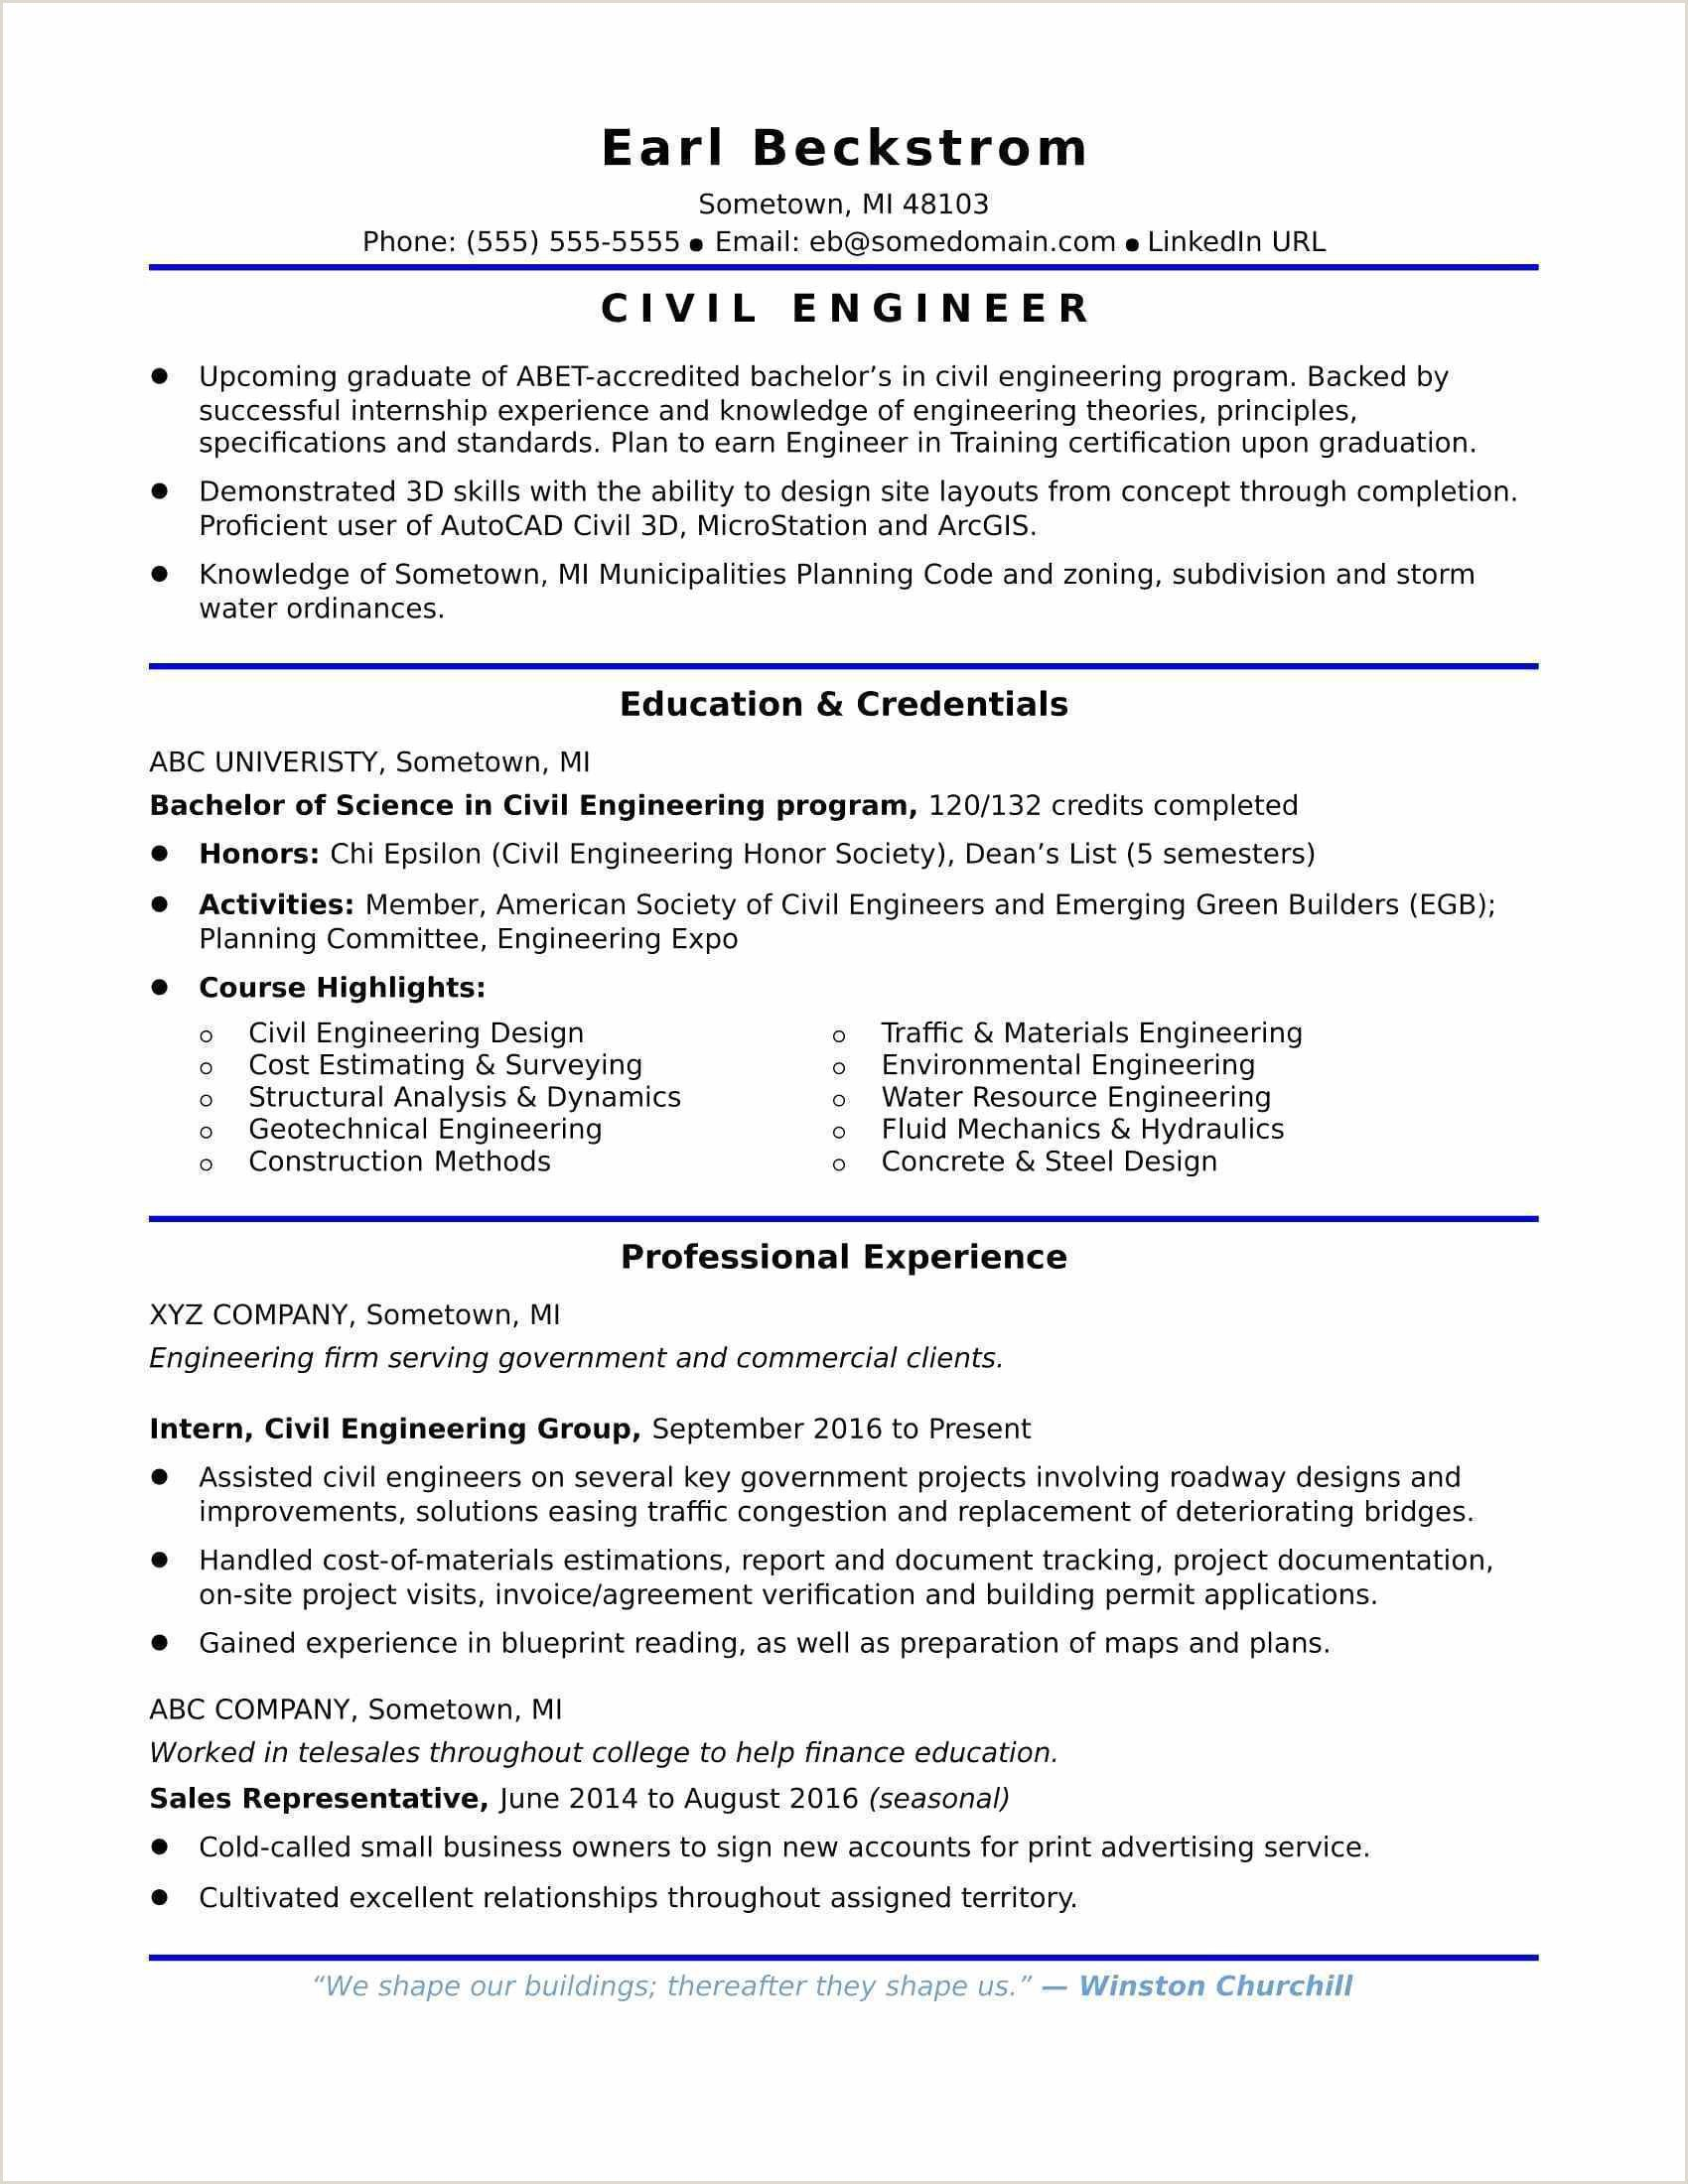 Fresher Resume format Civil Engineer in 2020 Civil